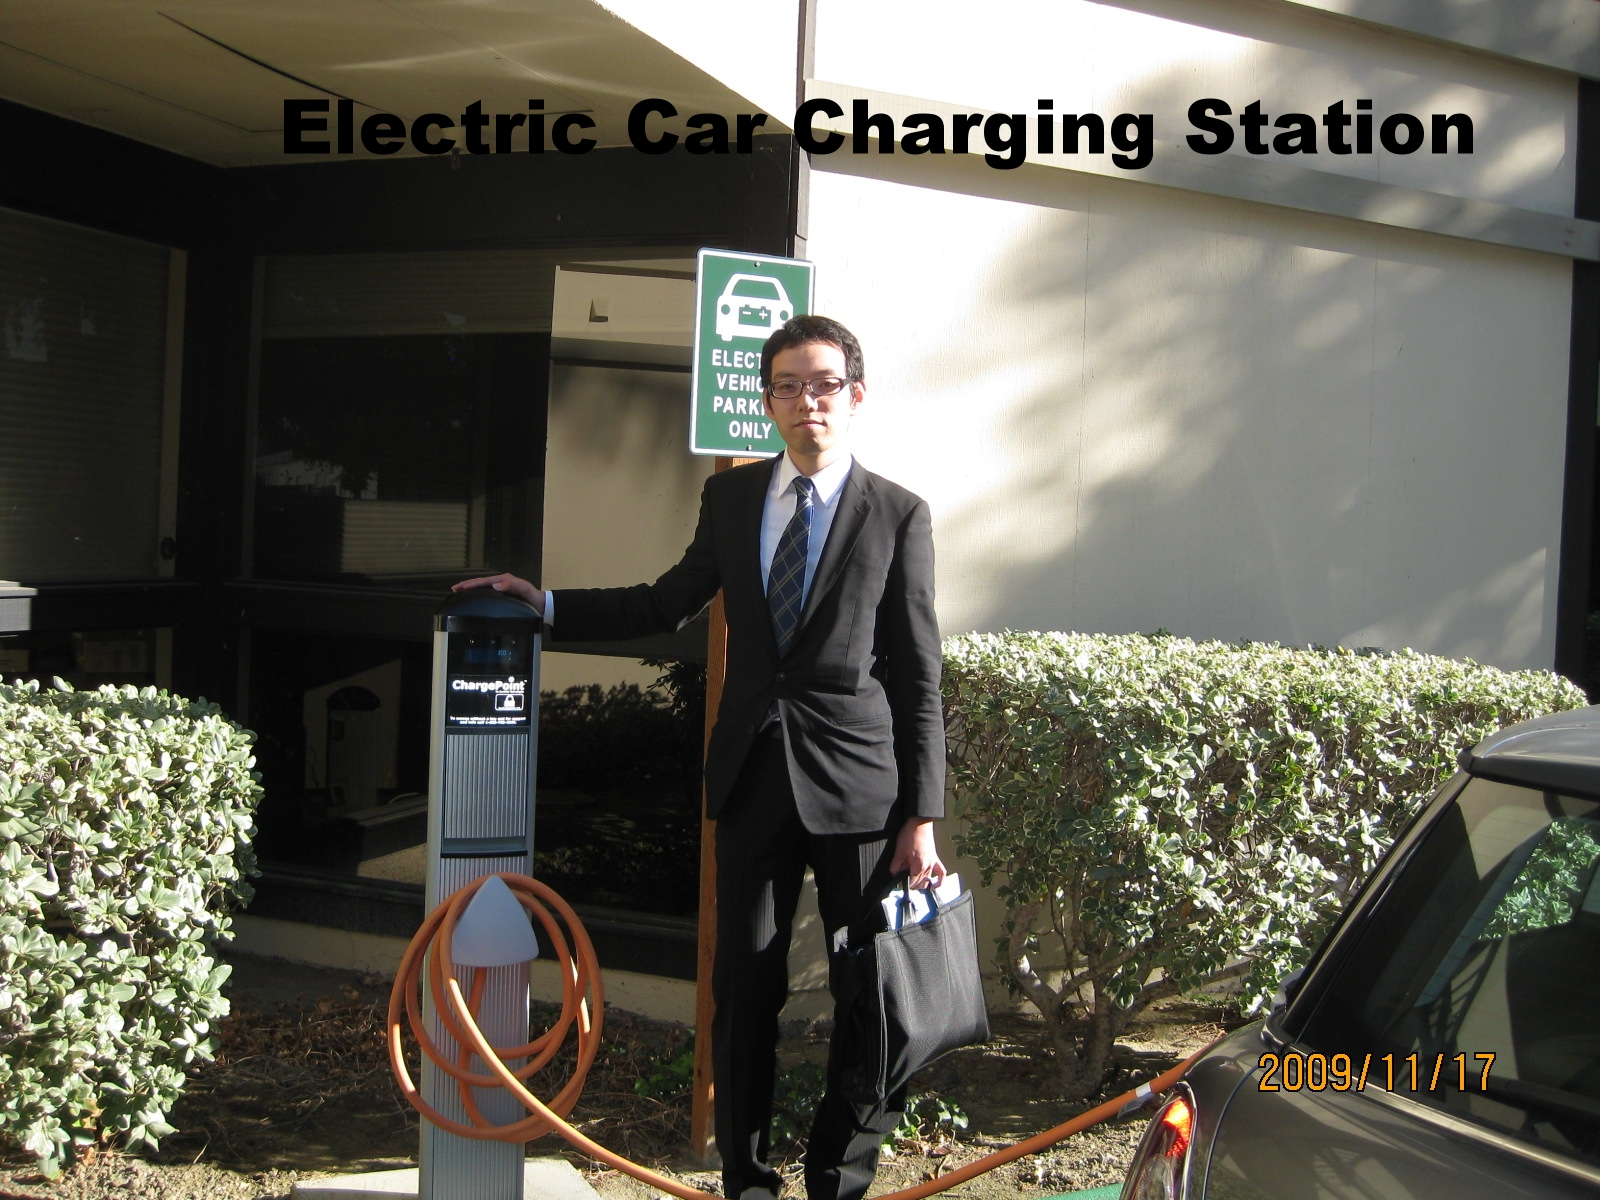 Chargepoint with Noritake VFD Display